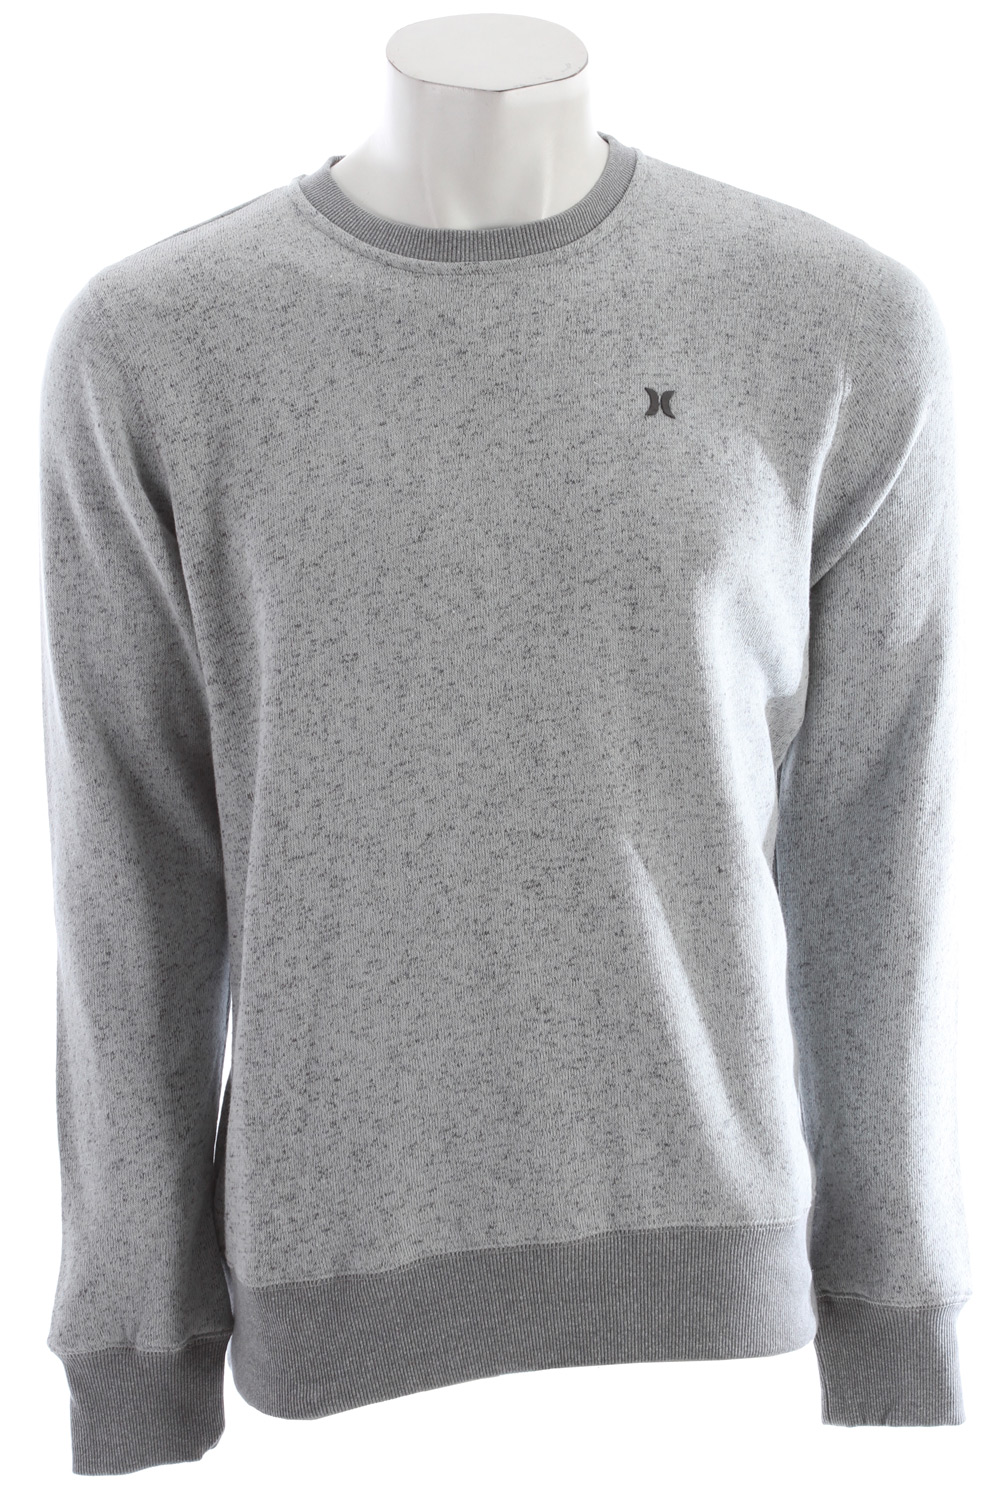 Surf Key Features of the Hurley Retreat Crew Sweatshirt: Regular Fit 60% Cotton/40% Polyester 290g Yarn Dye Slub contrast brush back French Terry. Crew neck fleece with high-density icon at left chest. - $34.95